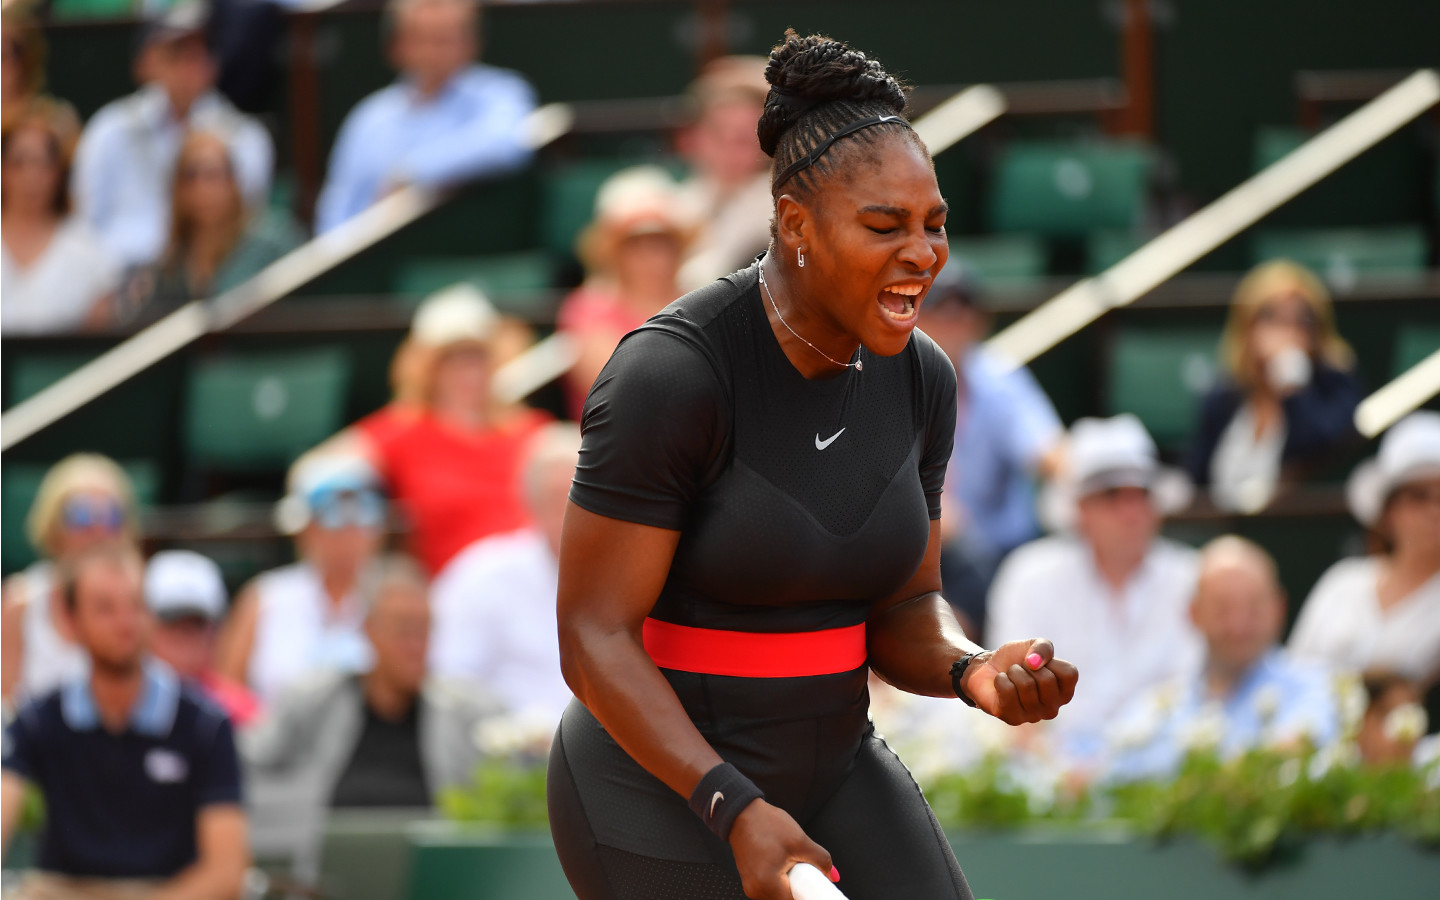 Handson Kweekkas Serre Three To See Serena S Big Test Roland Garros The 2019 French